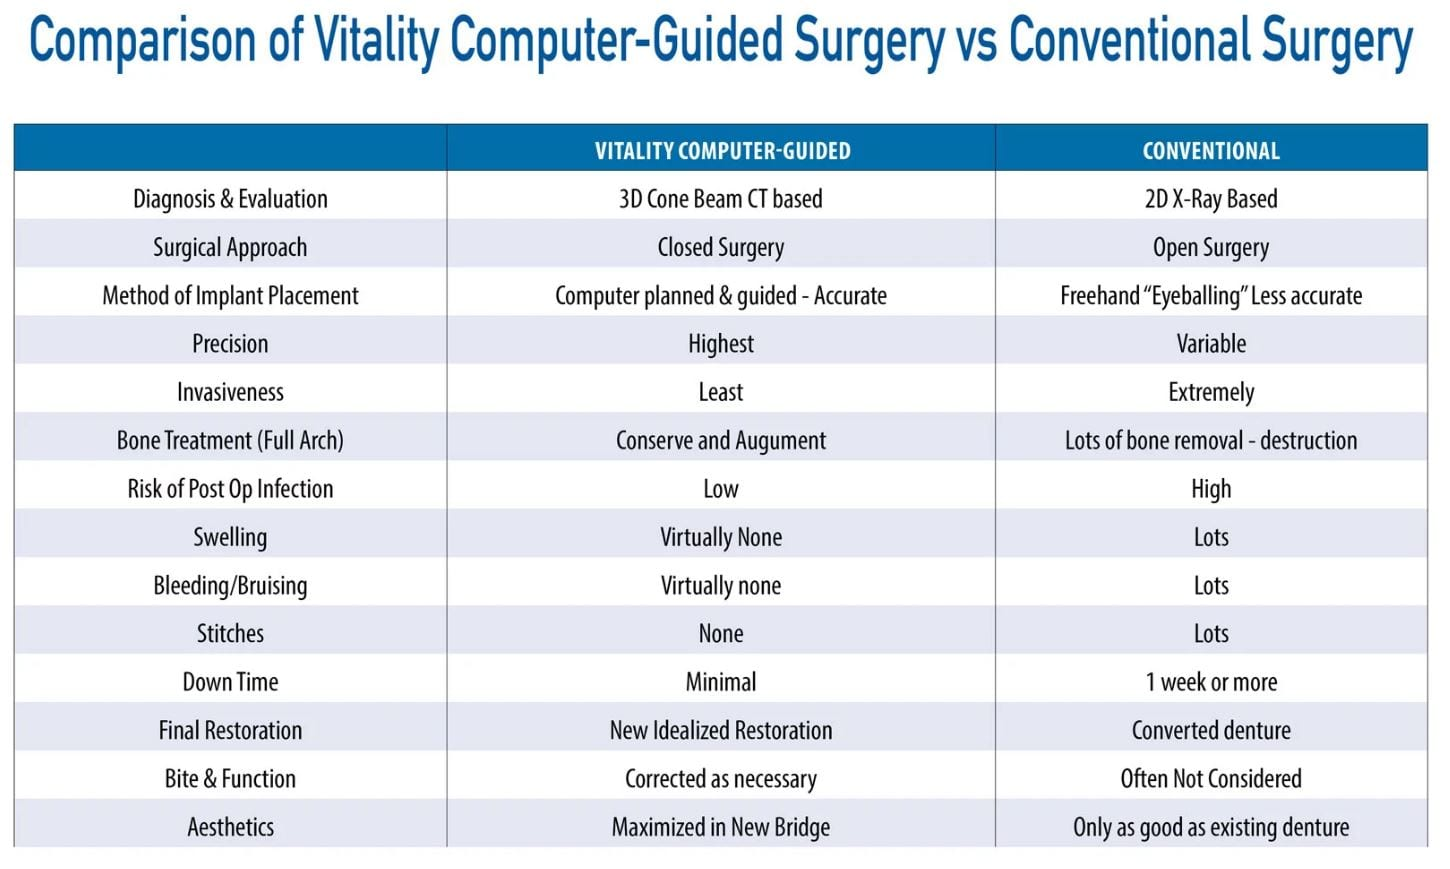 Vitality Computer-Guided Surgery Vs Conventional Surgery